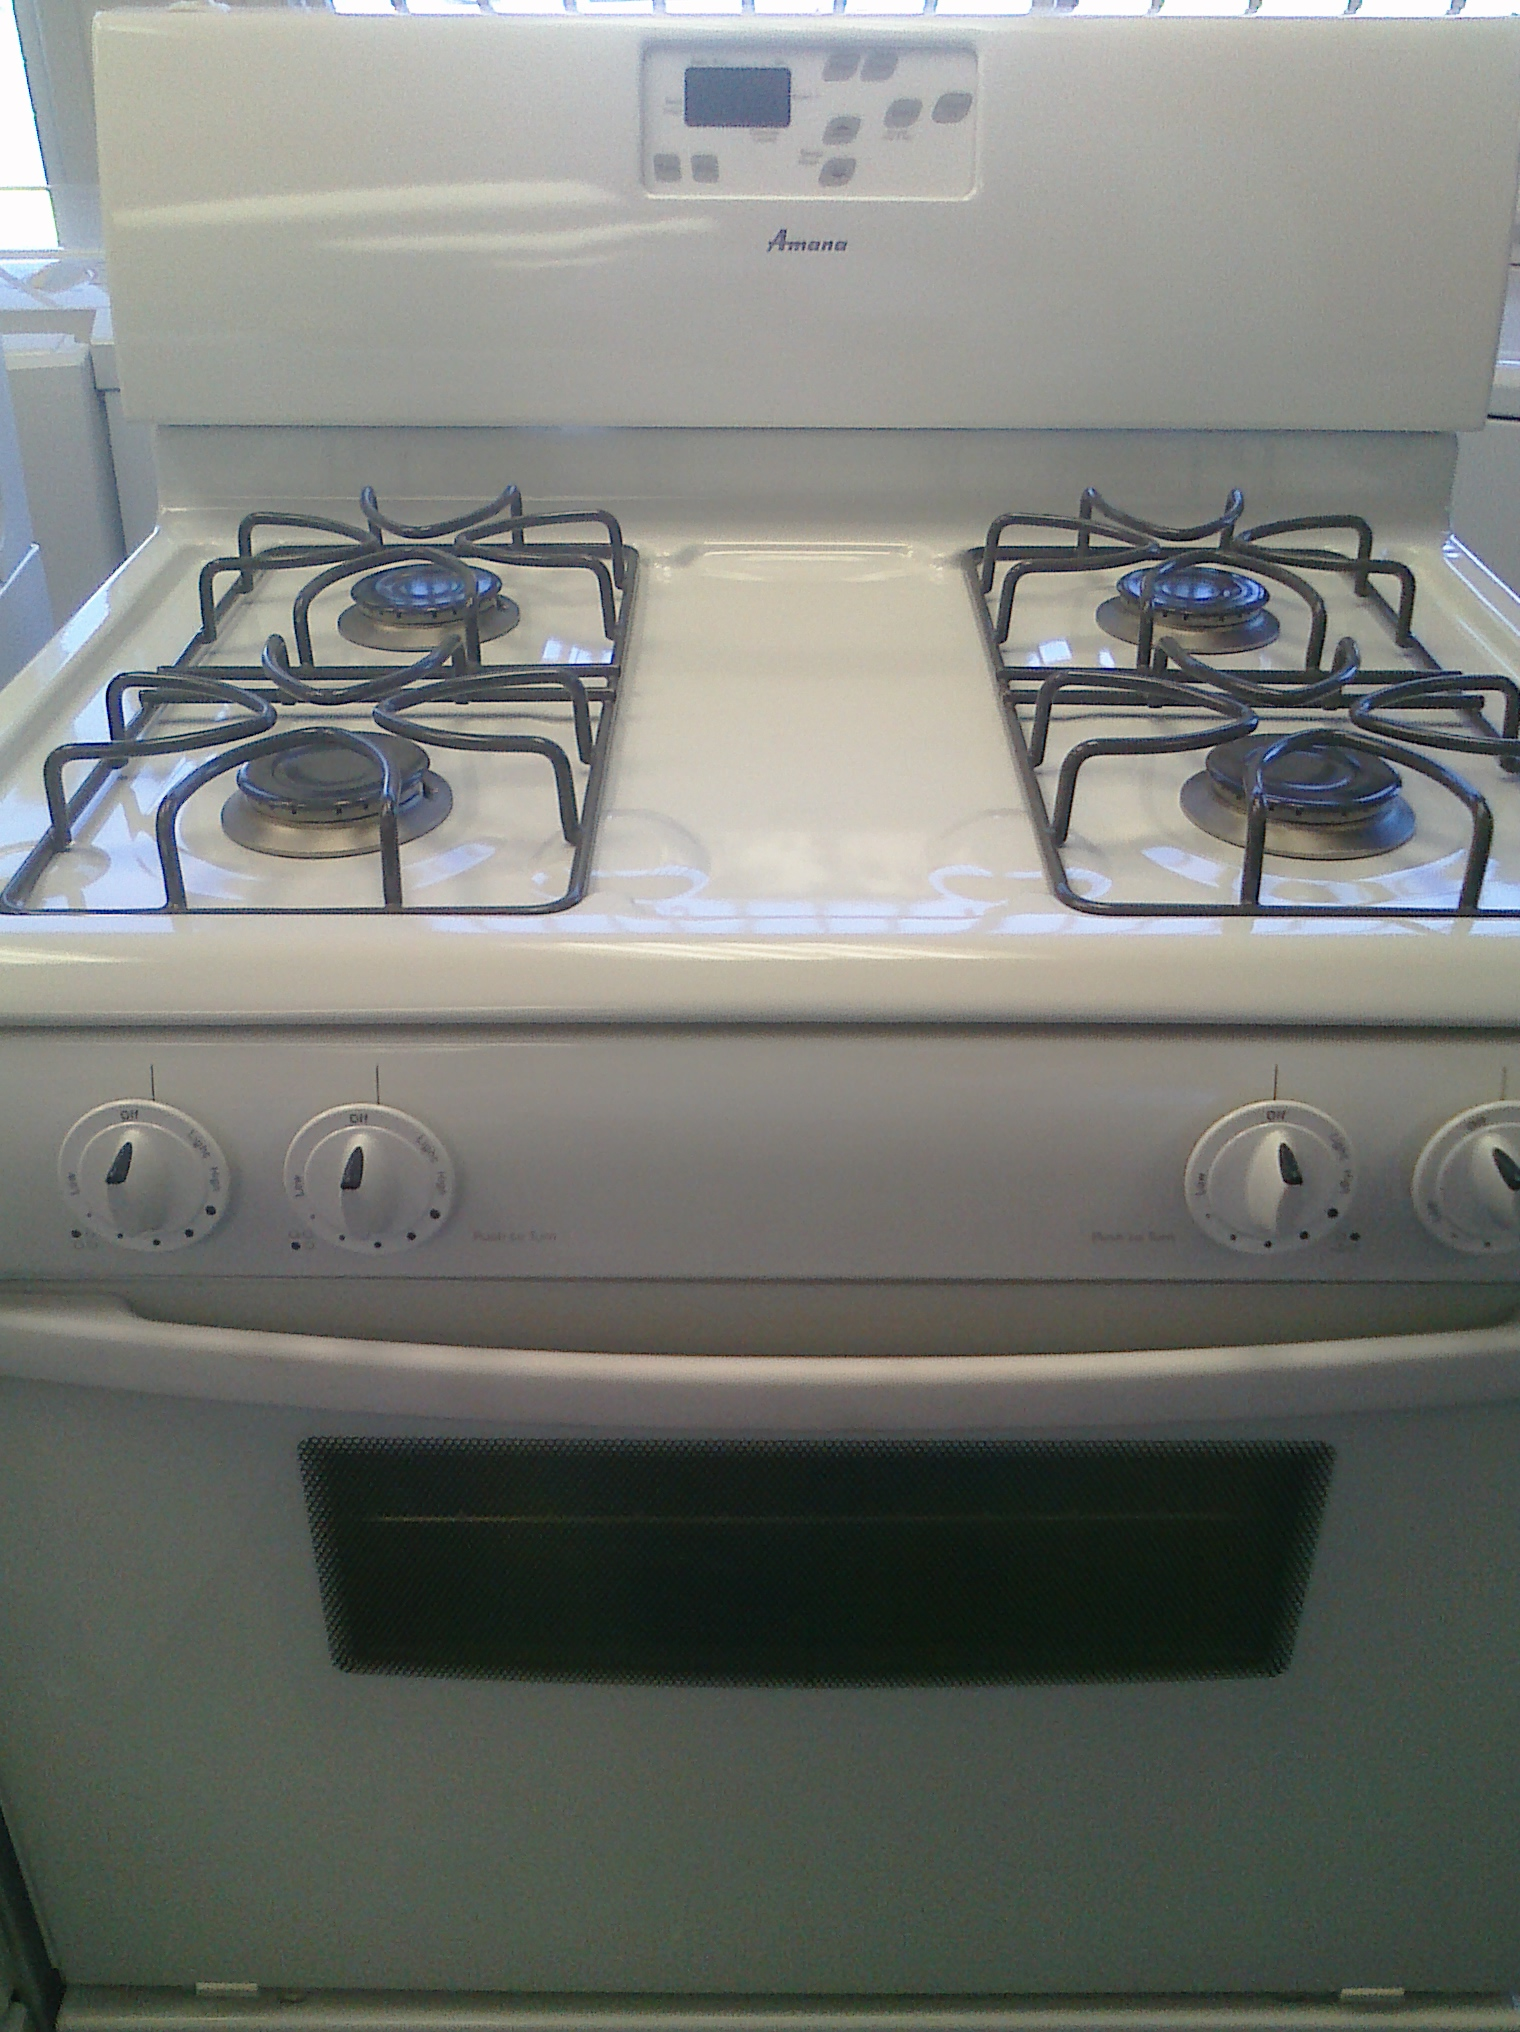 (7) Amana AGR4422VDW 30 inch Gas Range with Window and Timer, White